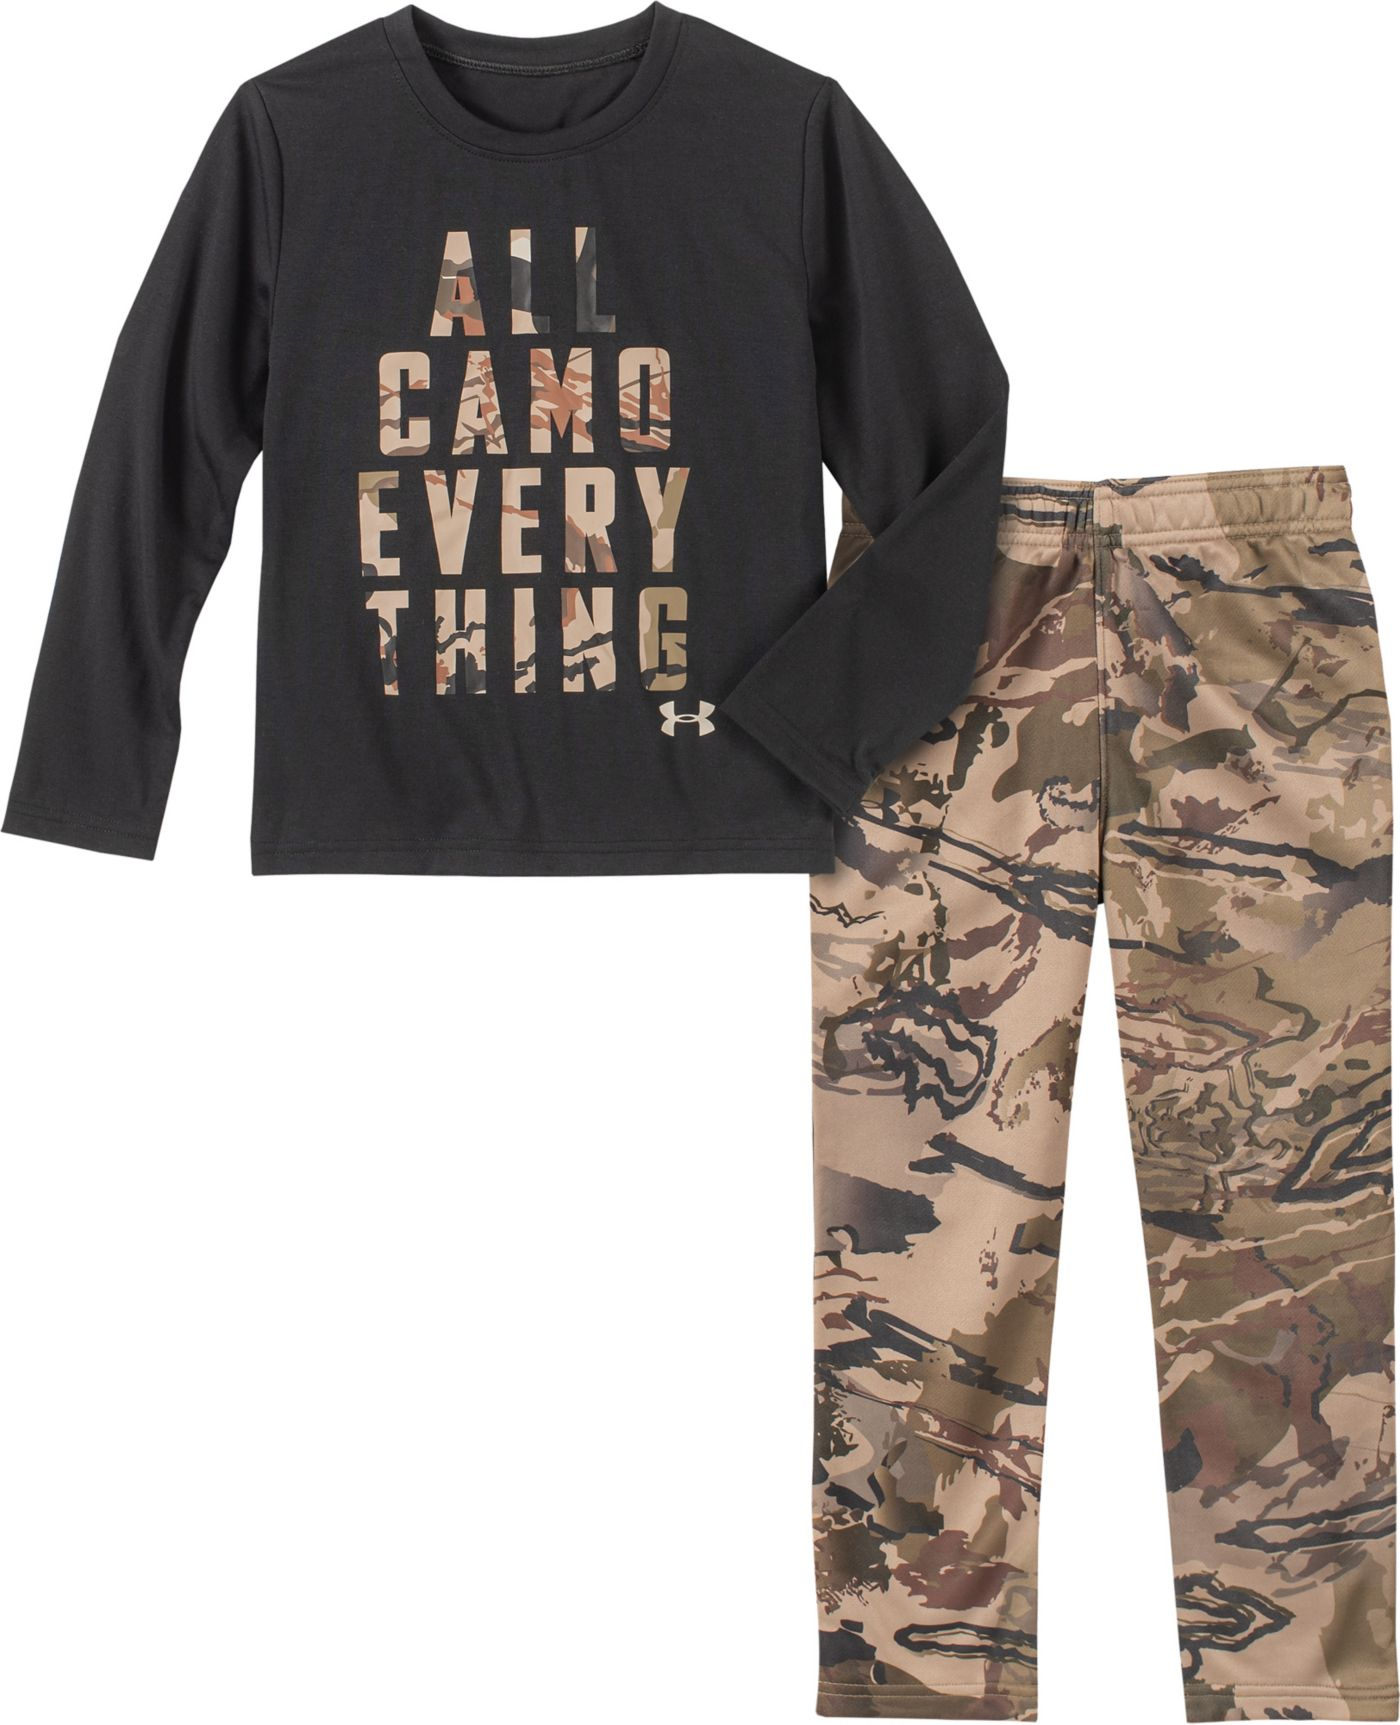 Under Armour Toddler Boys' All Camo Everything T-Shirt and Pants Set